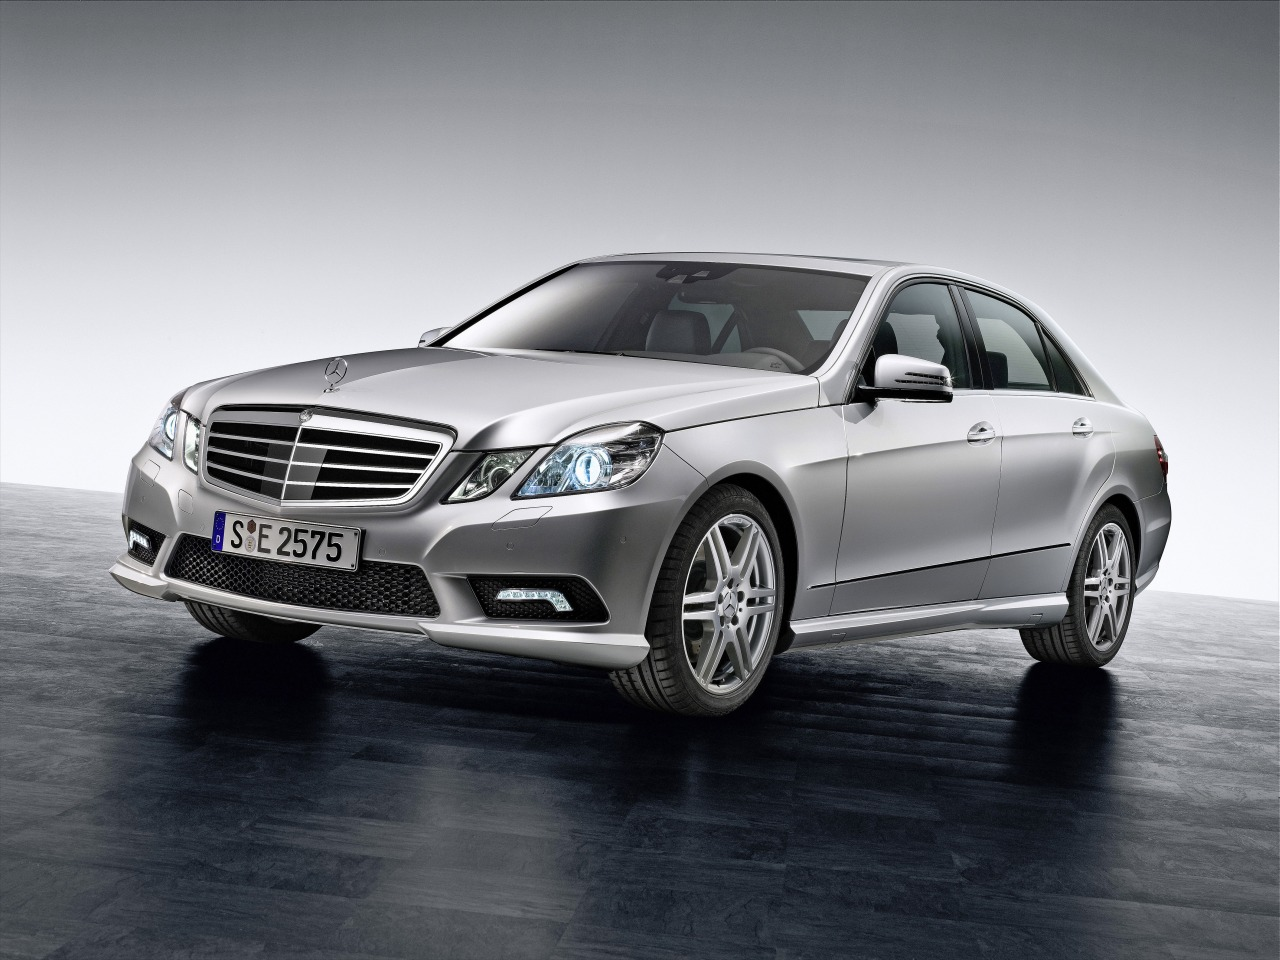 2011 2012 mercedes benz e class price in india for Mercedes benz a class price